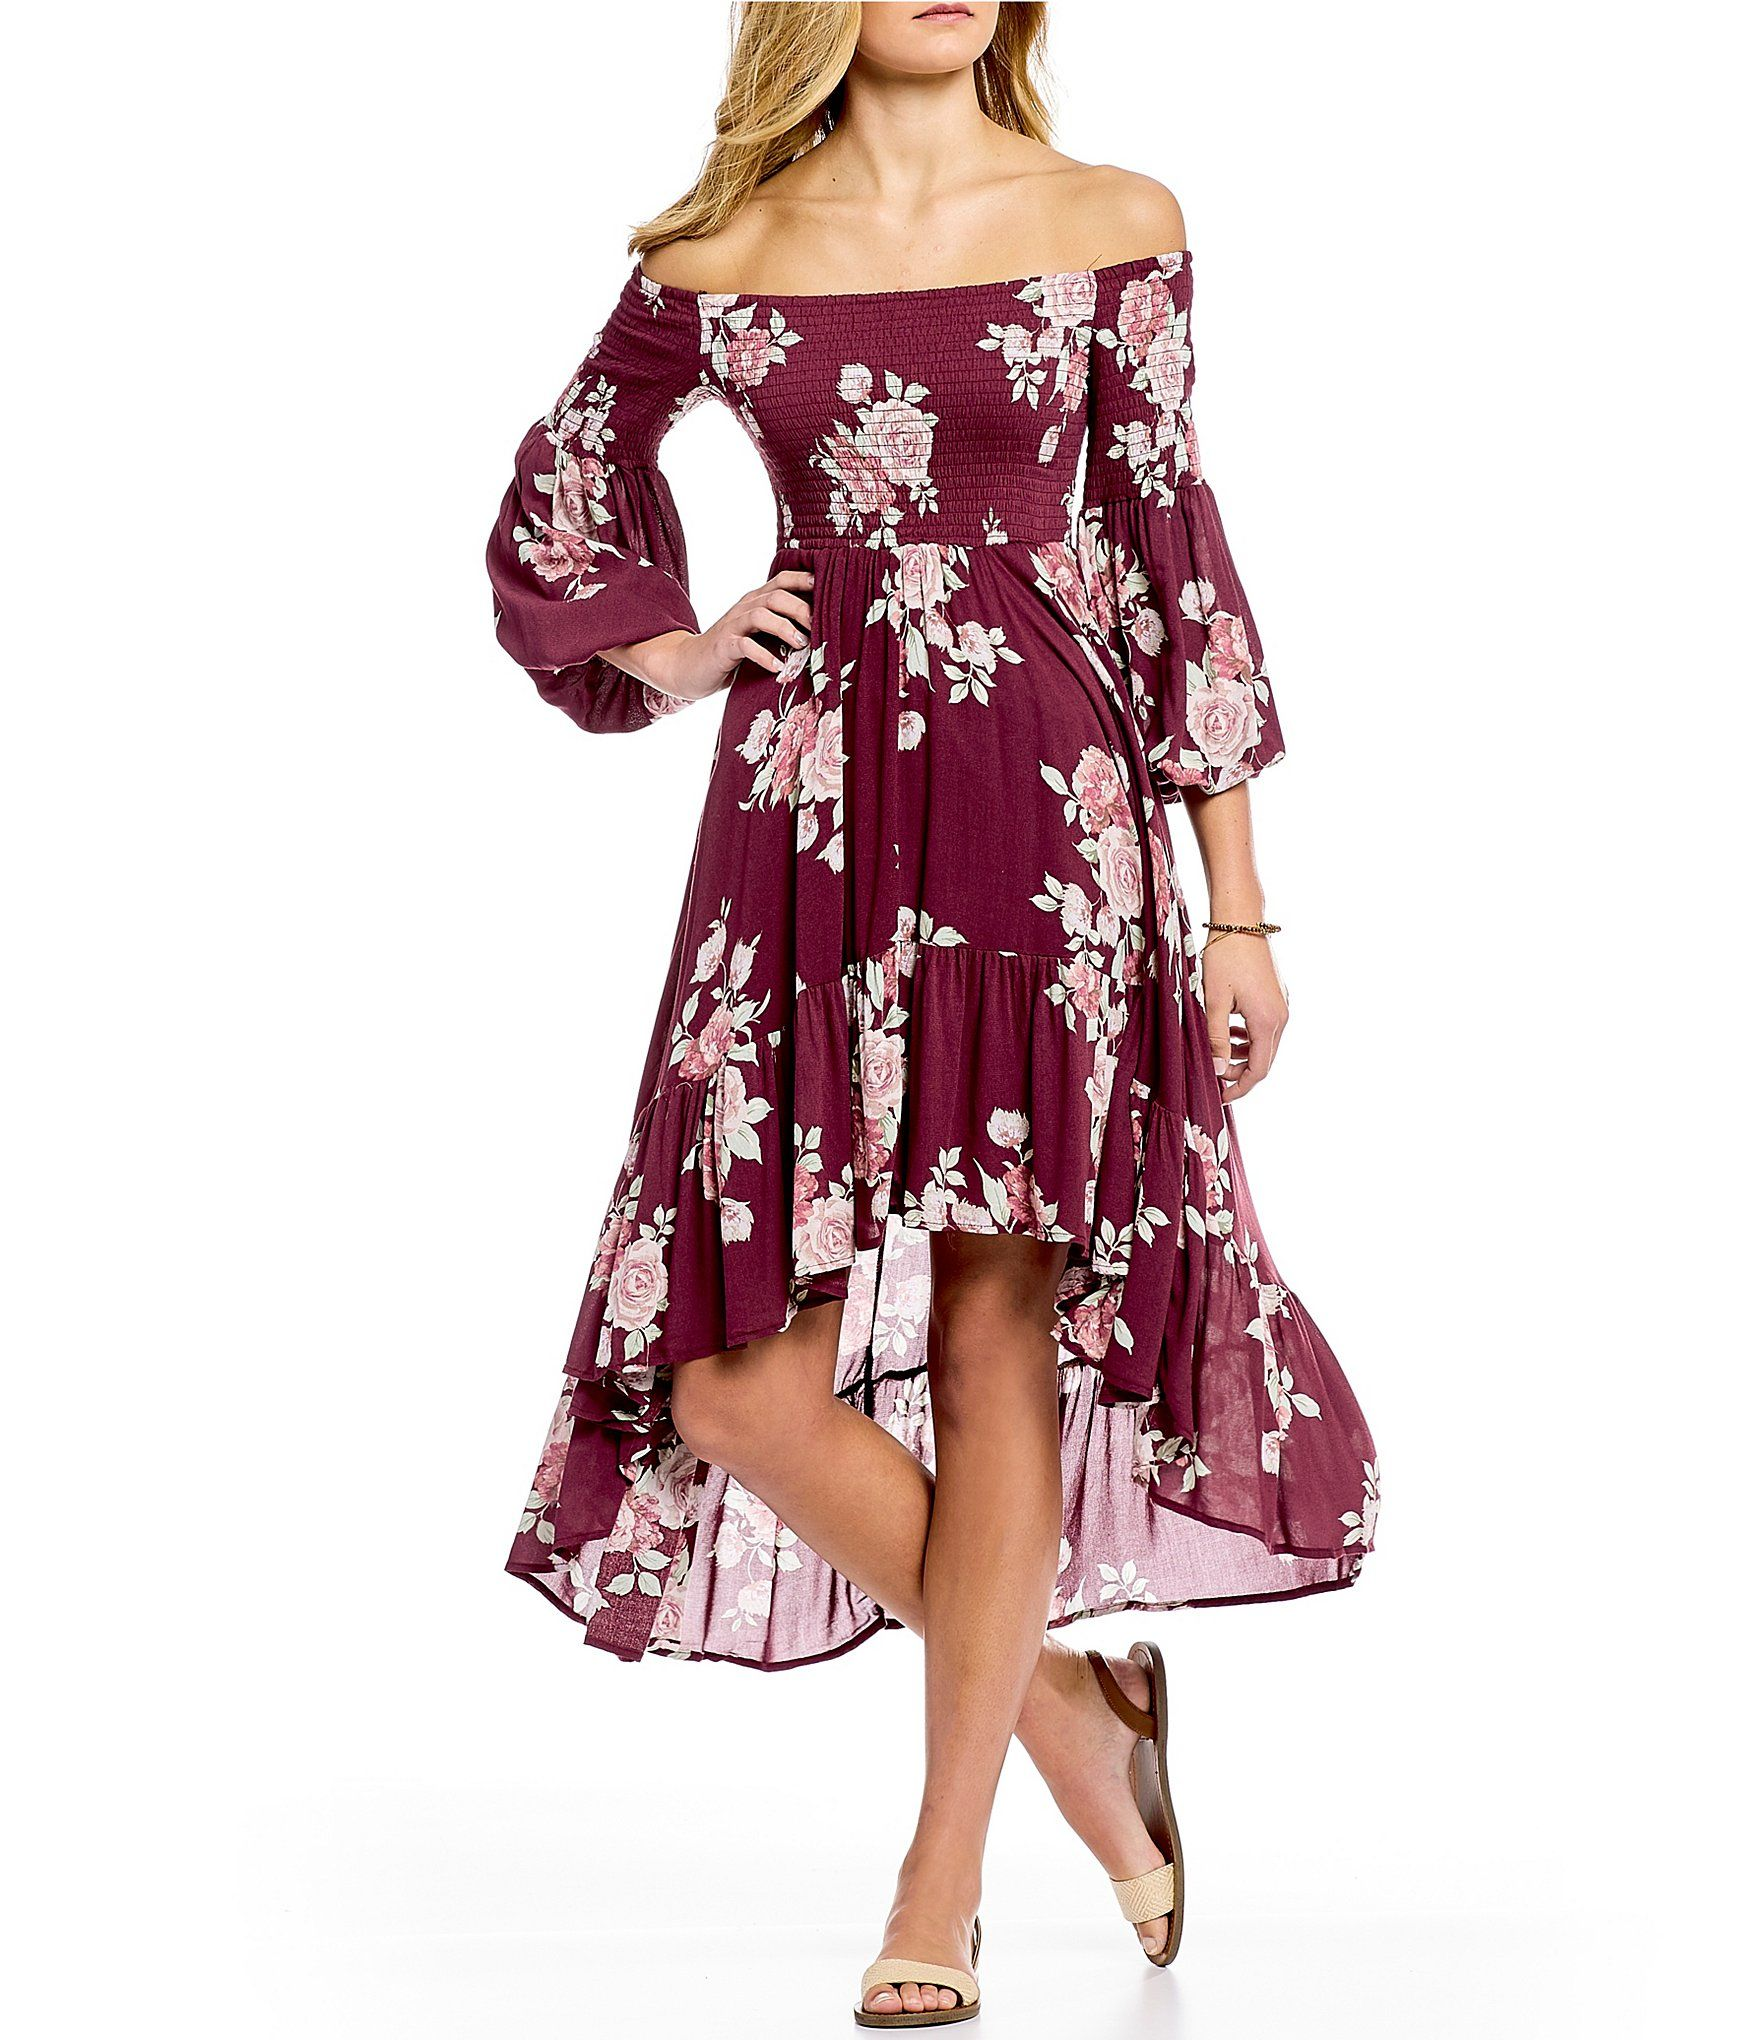 a7e380a58f1 Shop for Coco + Jaimeson Floral Print Smocked High-Low Dress at Dillards.com.  Visit Dillards.com to find clothing